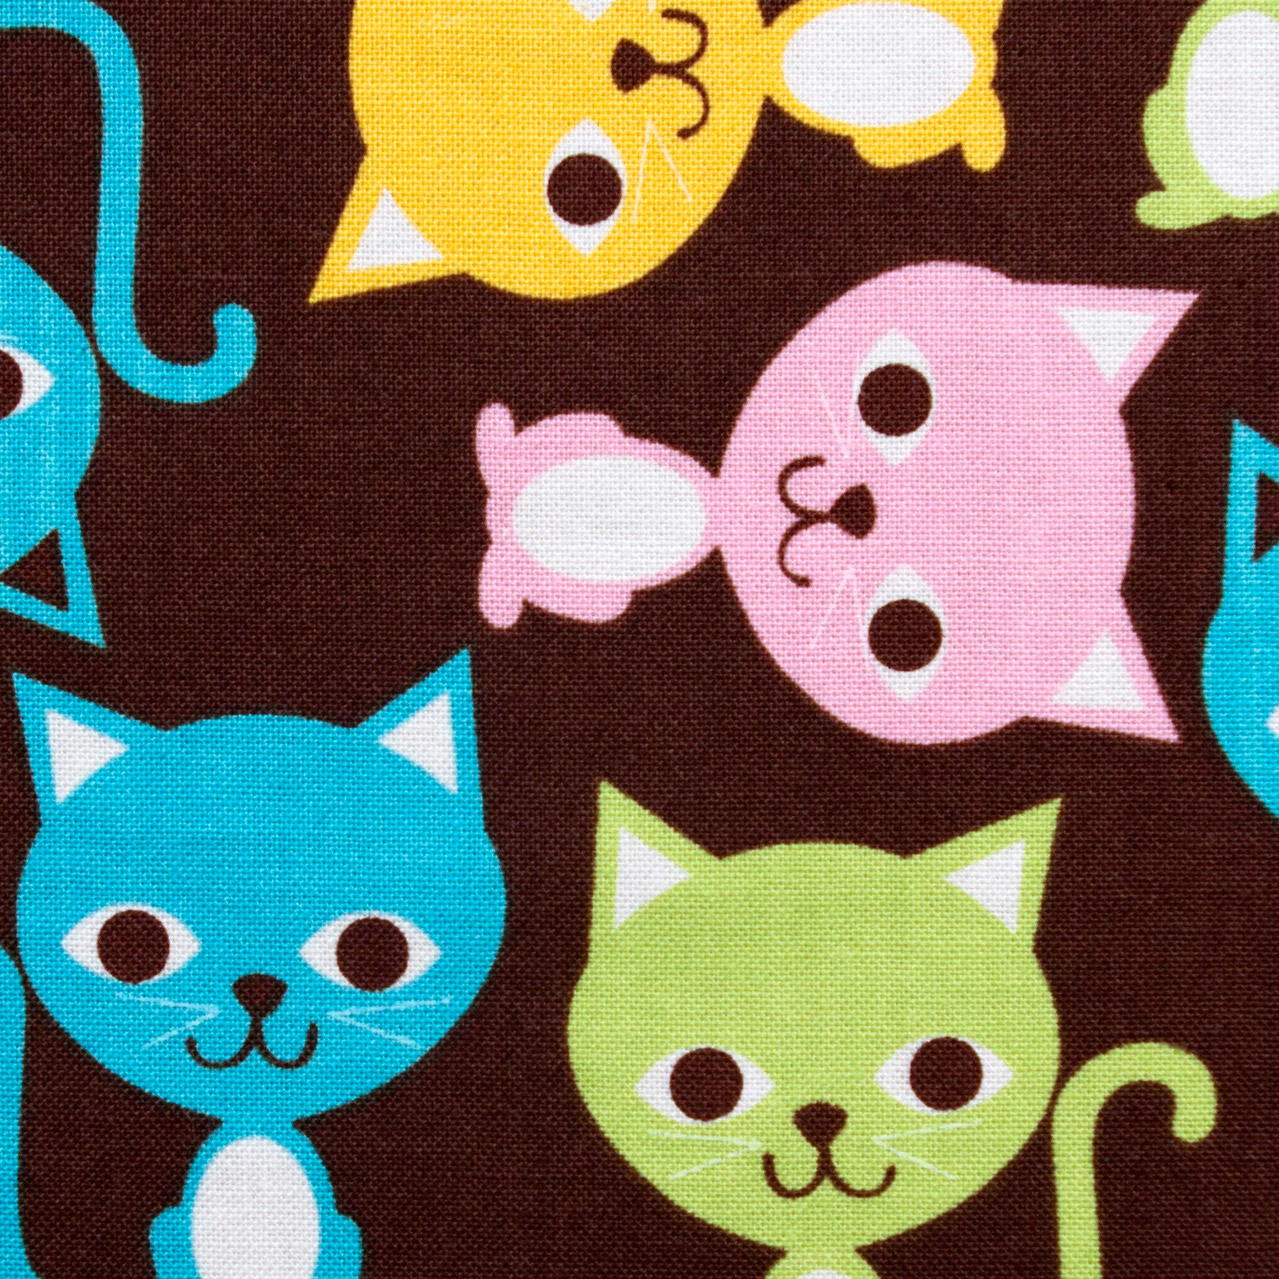 Kitty Korner print